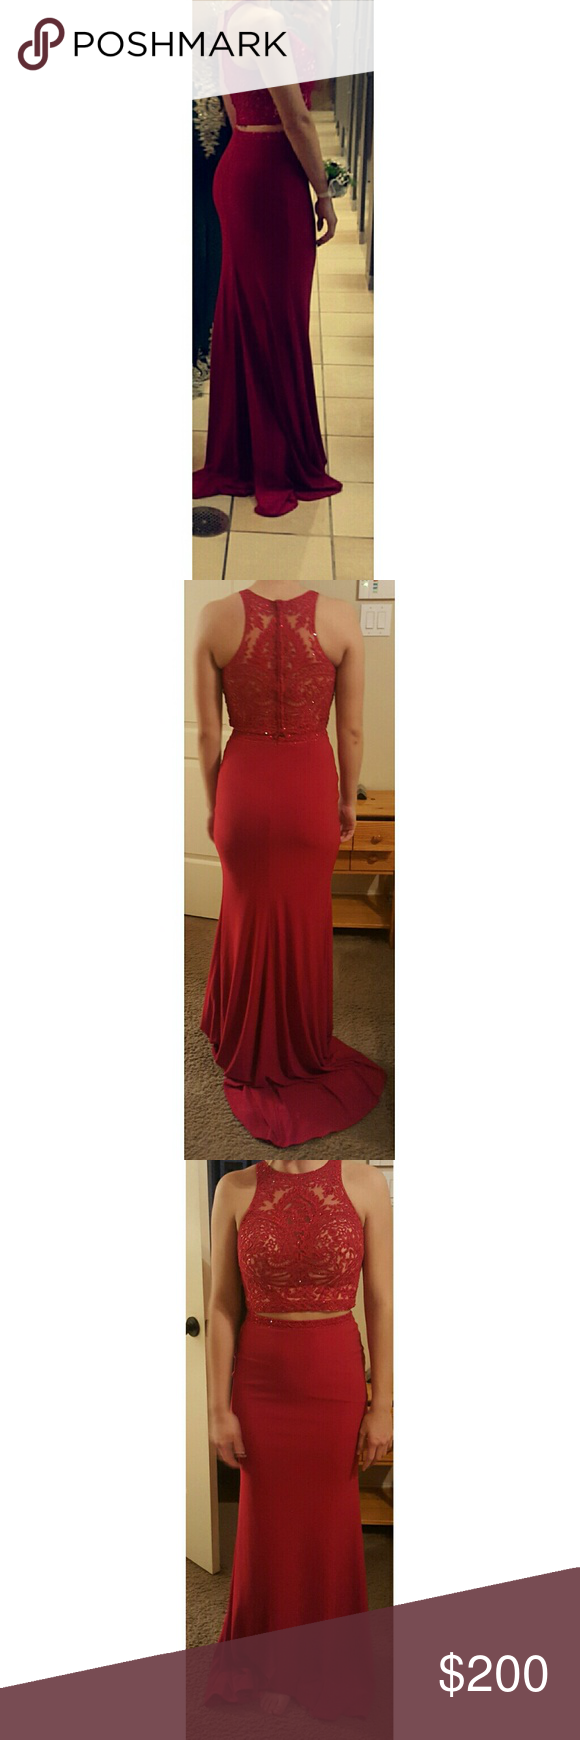 The dress for sale - Prom Dress For Sale Size 4 The Dress Is A Two Piece Red